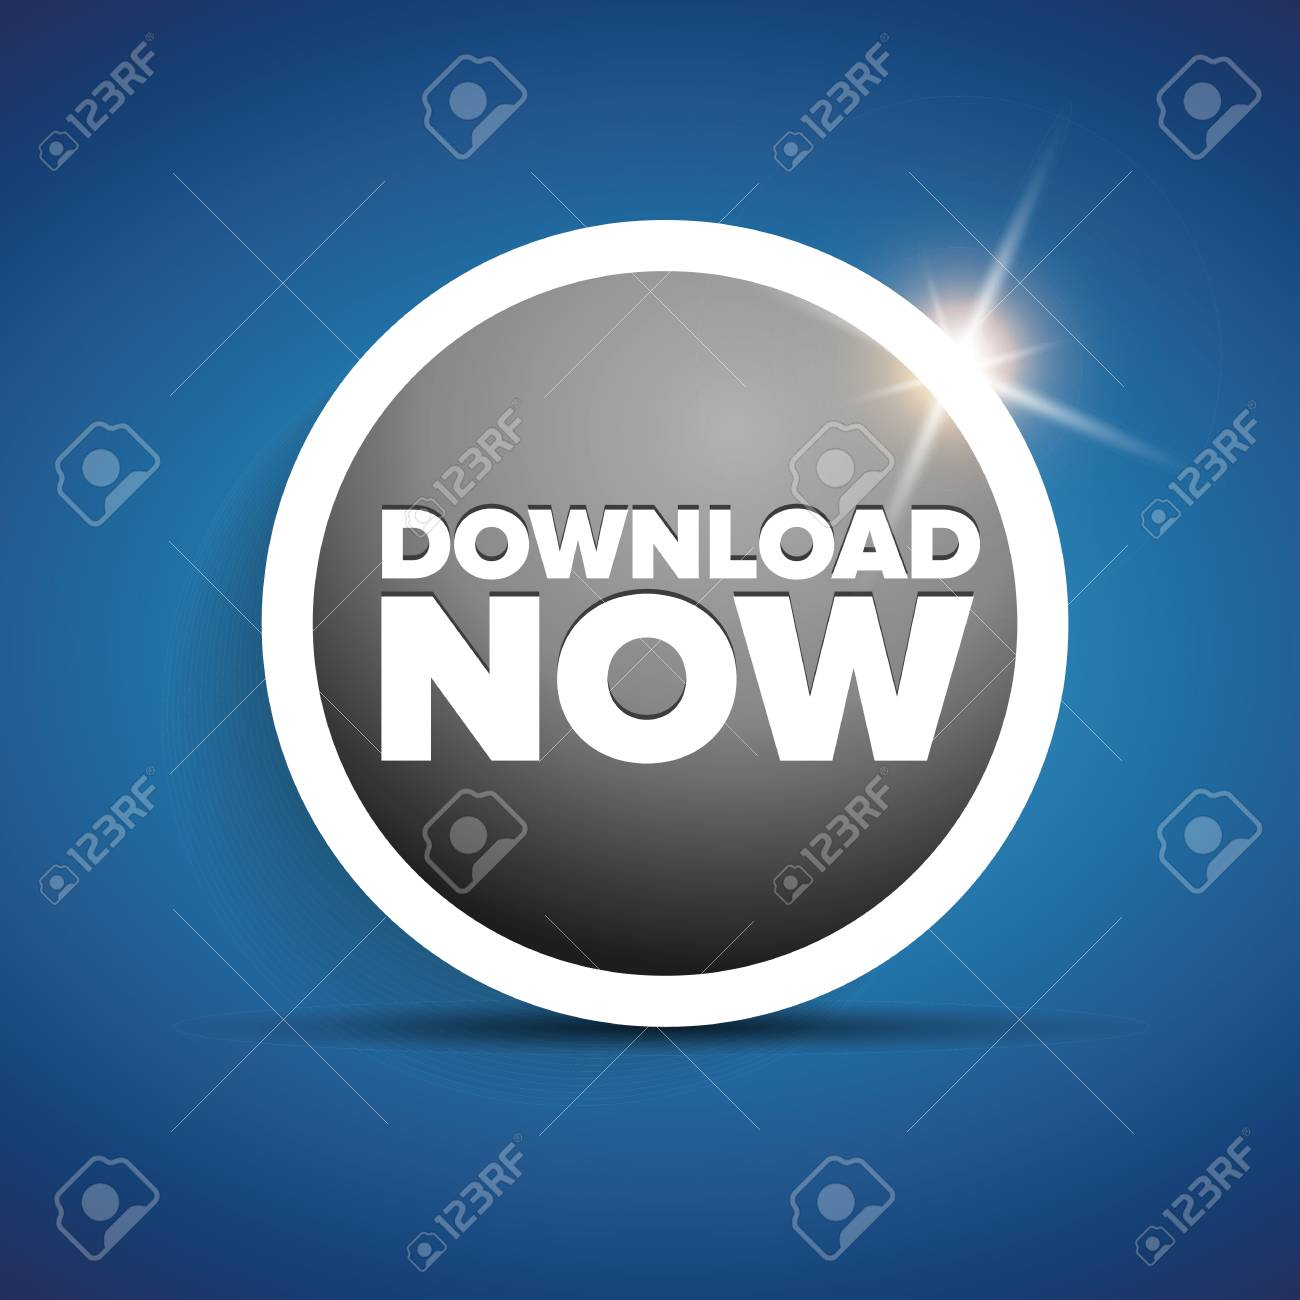 Download now button with shine Stock Vector - 37054996